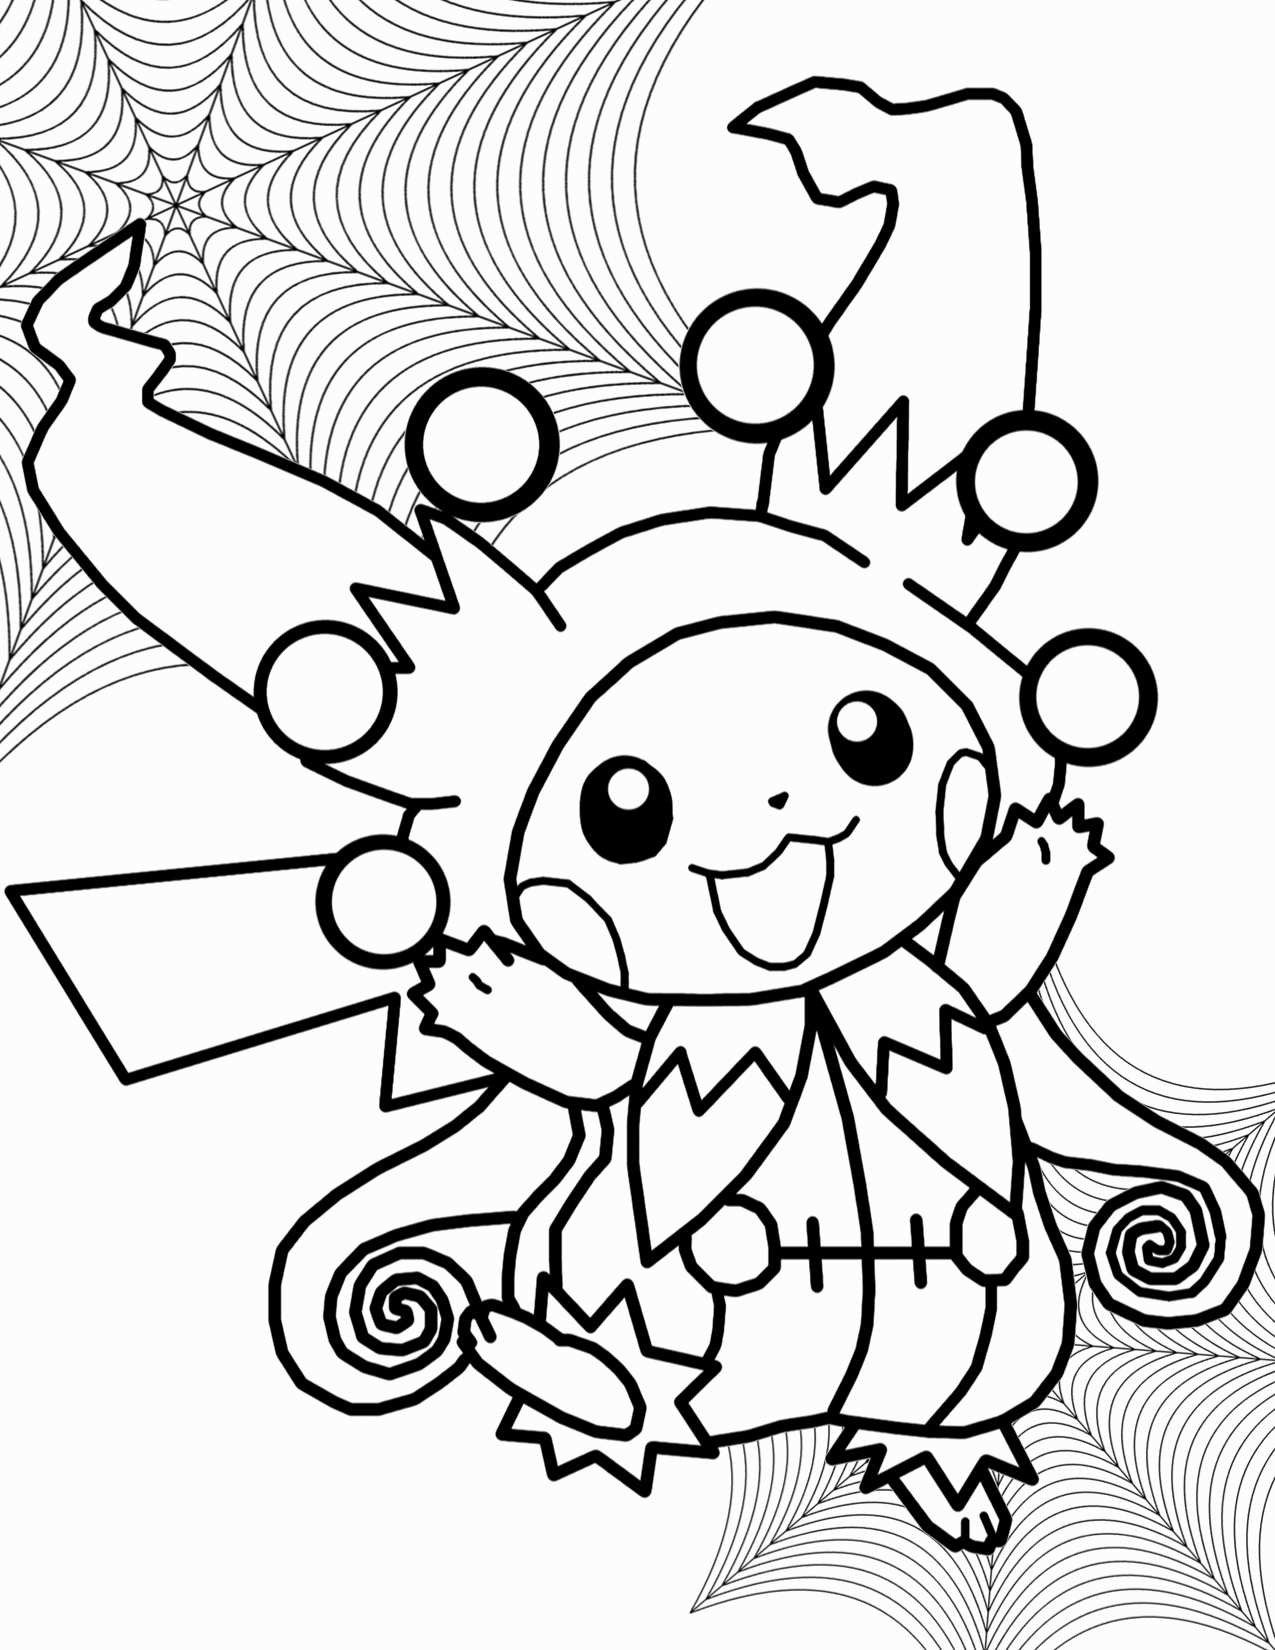 Pokemon Halloween Coloring Through The Thousand Photos On Line In Relation To Pokemon Halloween Pikachu Coloring Page Pokemon Coloring Pokemon Coloring Pages